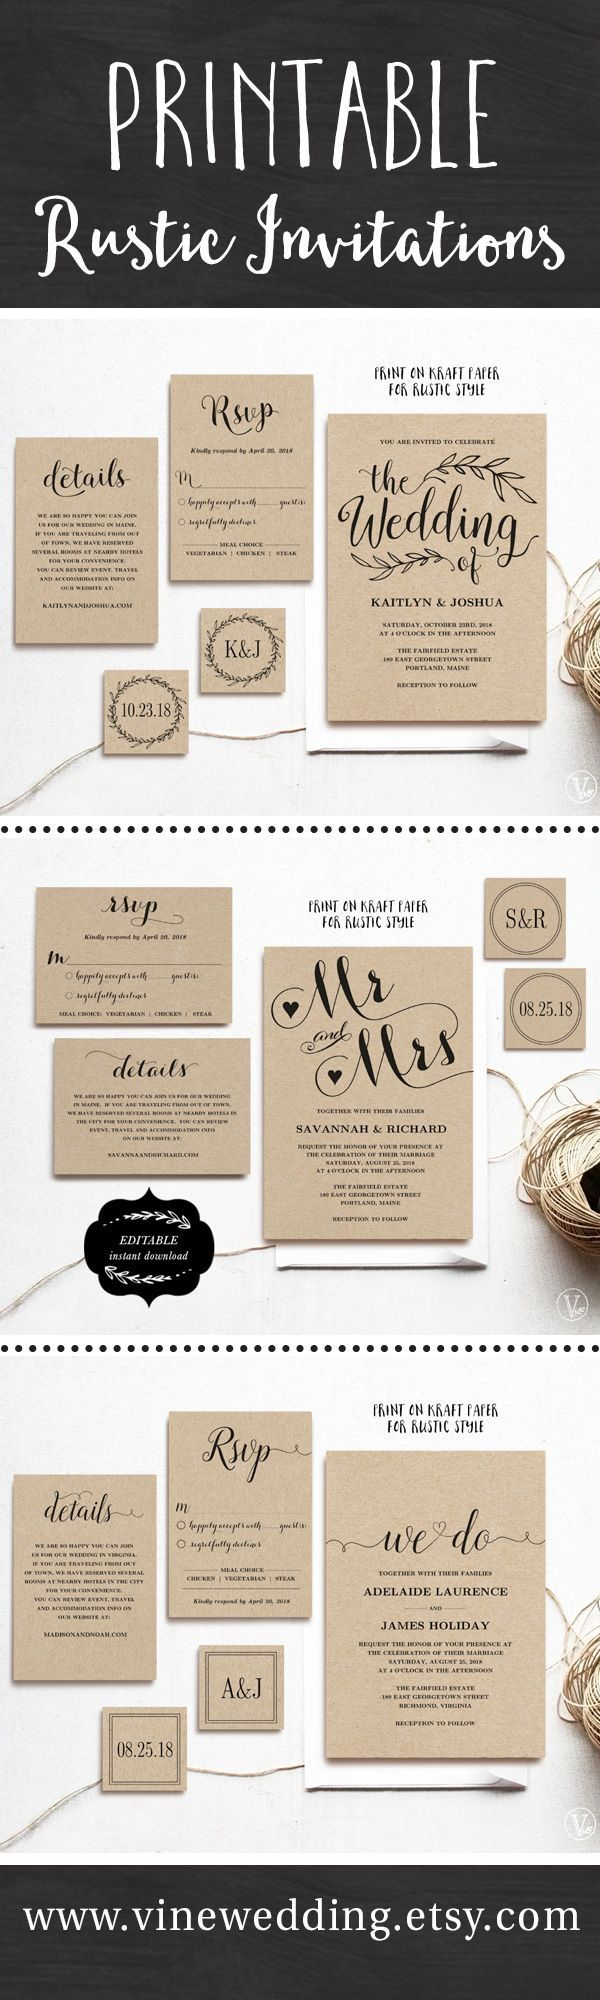 business event invitation templates%0A Beautiful rustic wedding invitations  Editable instant download templates  you can print as many as you